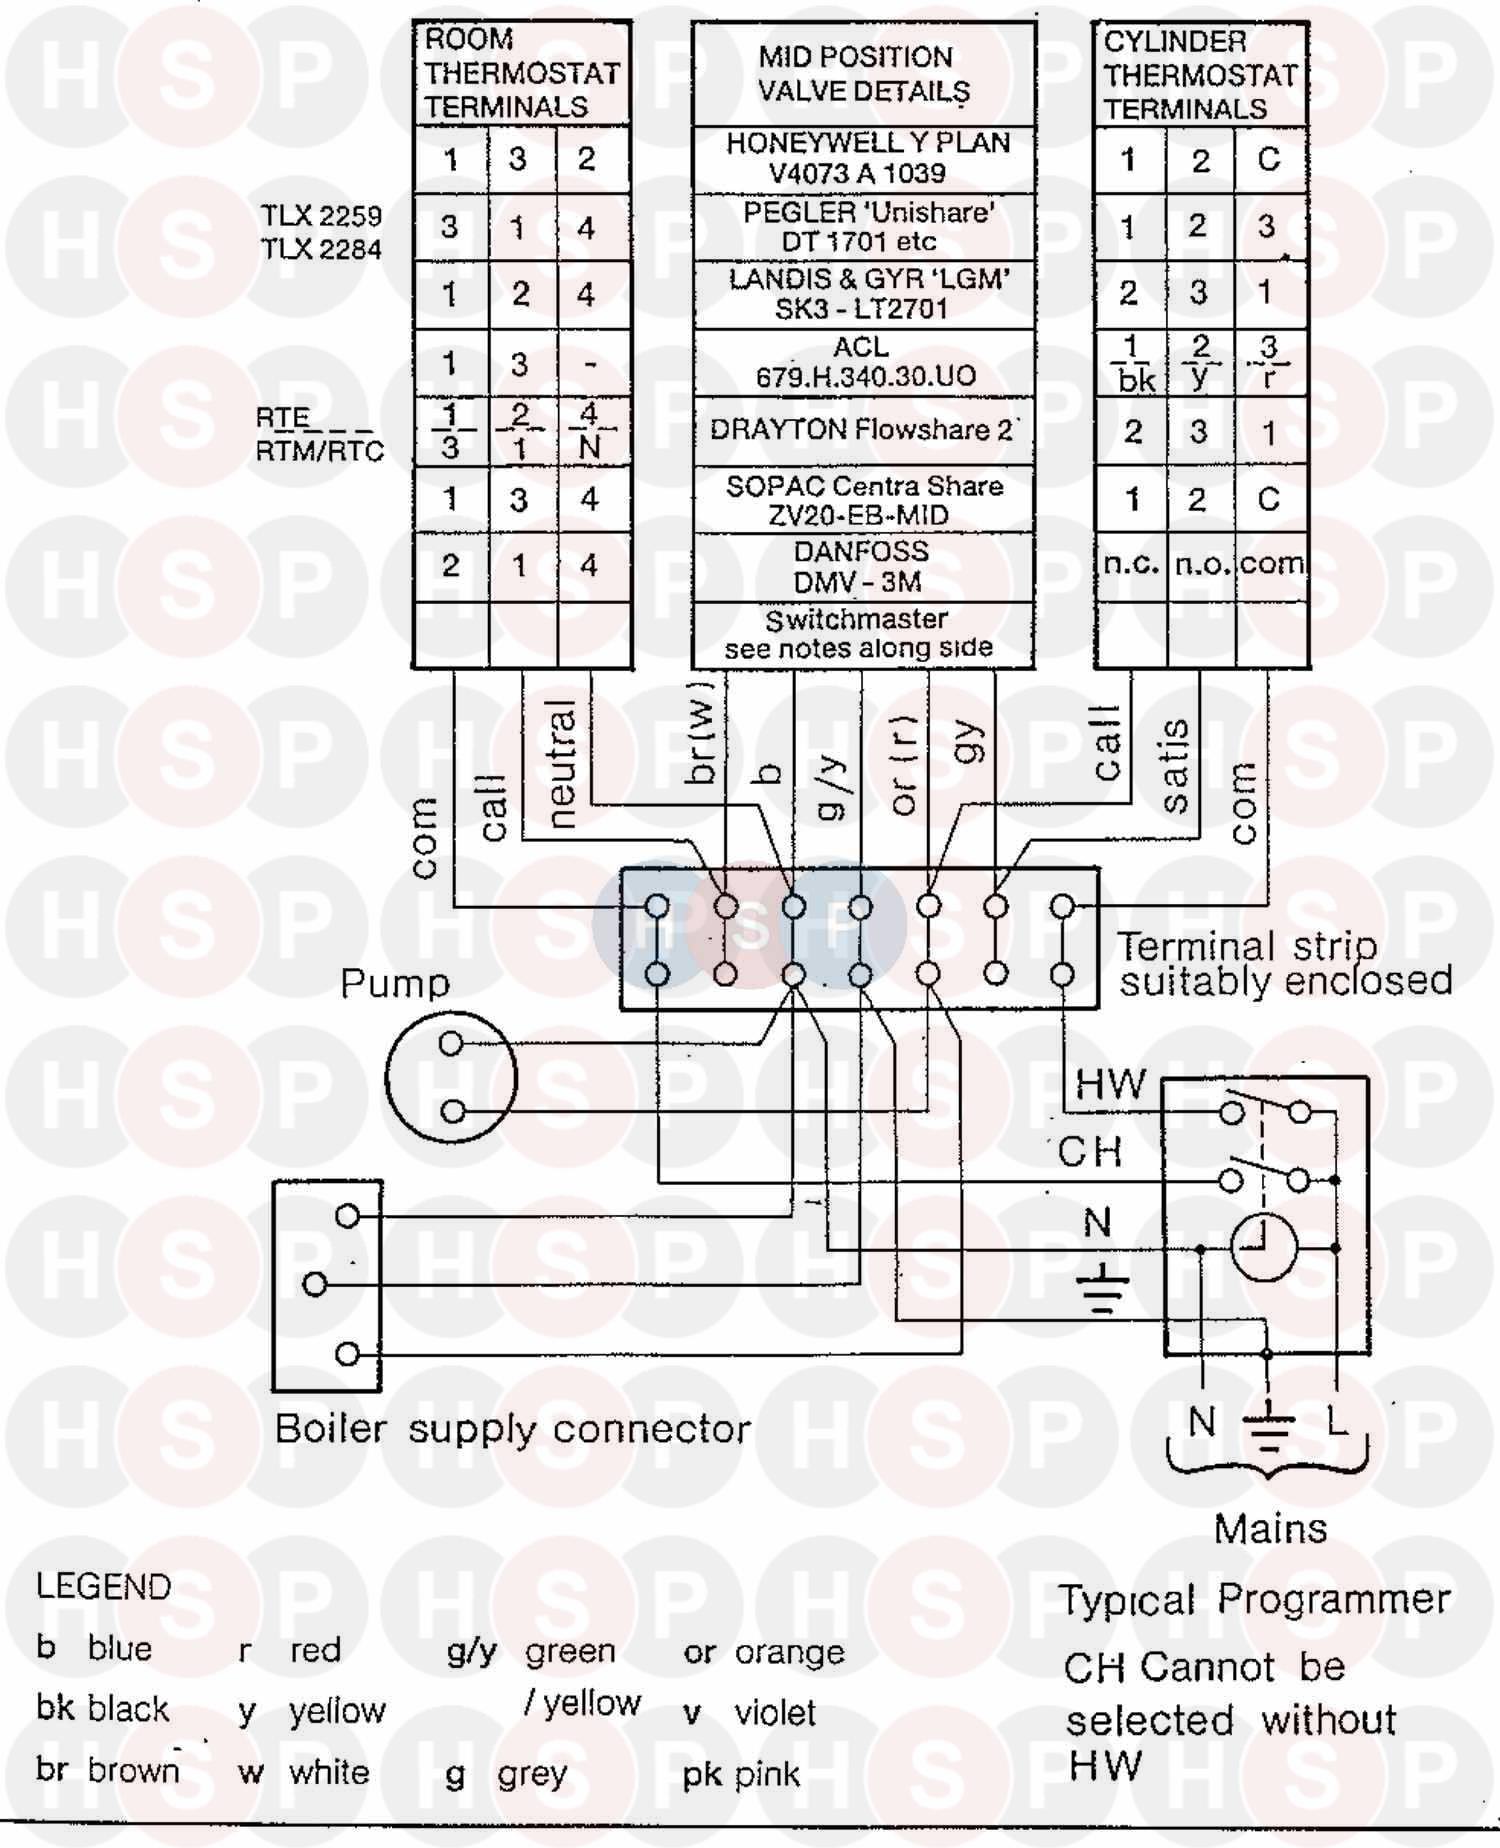 Ideal elan 2 nf 240 wiring diagram 2 diagram heating spare parts click the diagram to open it on a new page cheapraybanclubmaster